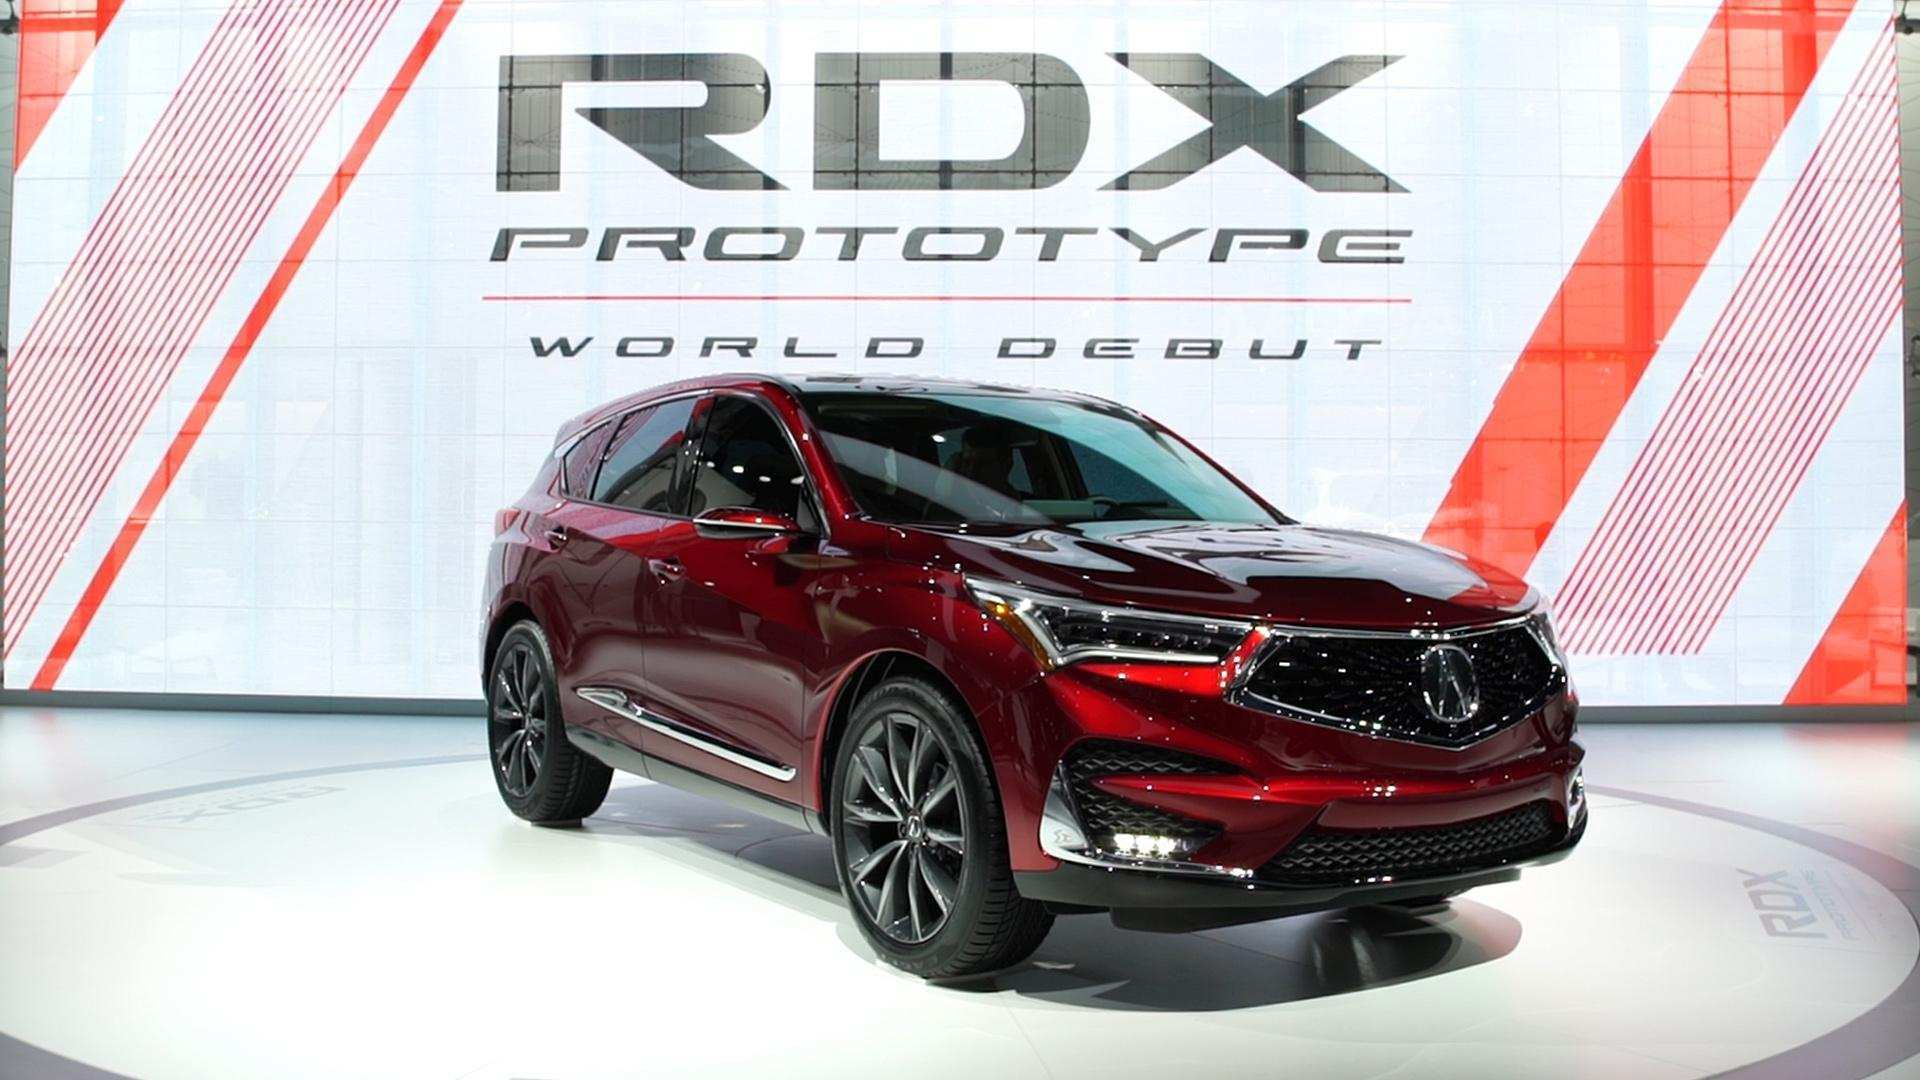 84 Best Review Best Acura Rdx 2018 Vs 2019 New Release First Drive by Best Acura Rdx 2018 Vs 2019 New Release